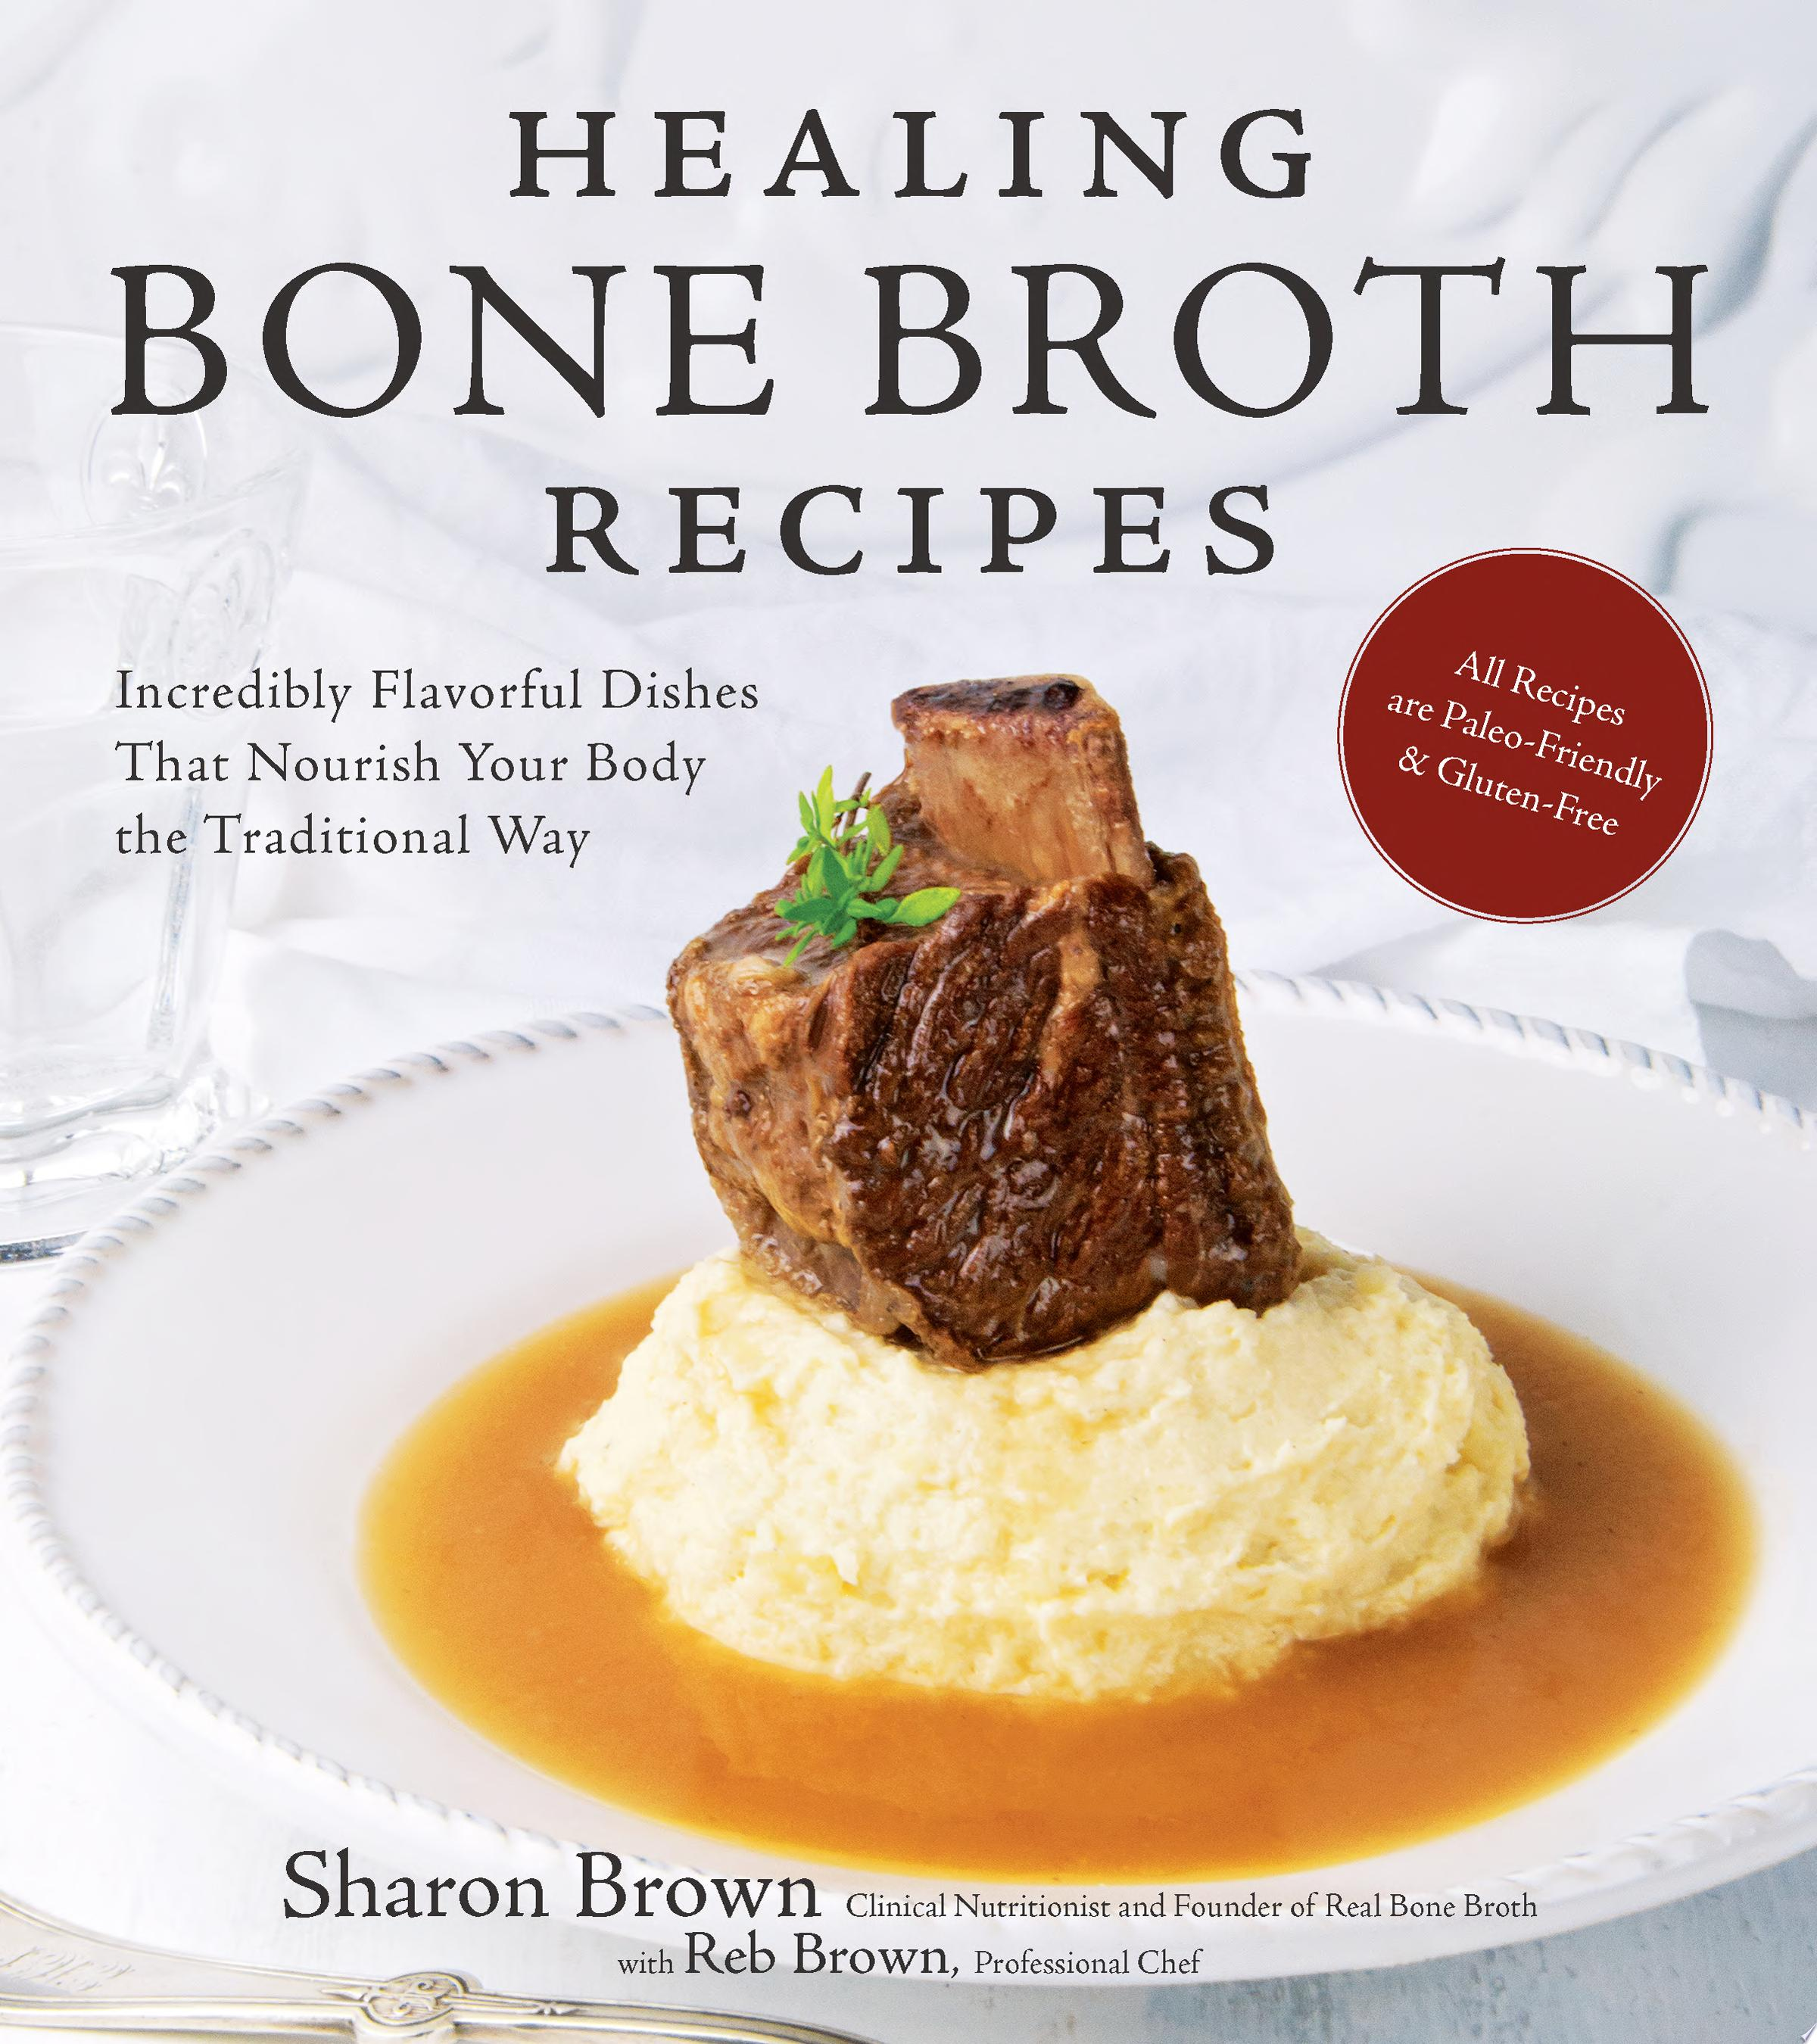 Healing Bone Broth Recipes